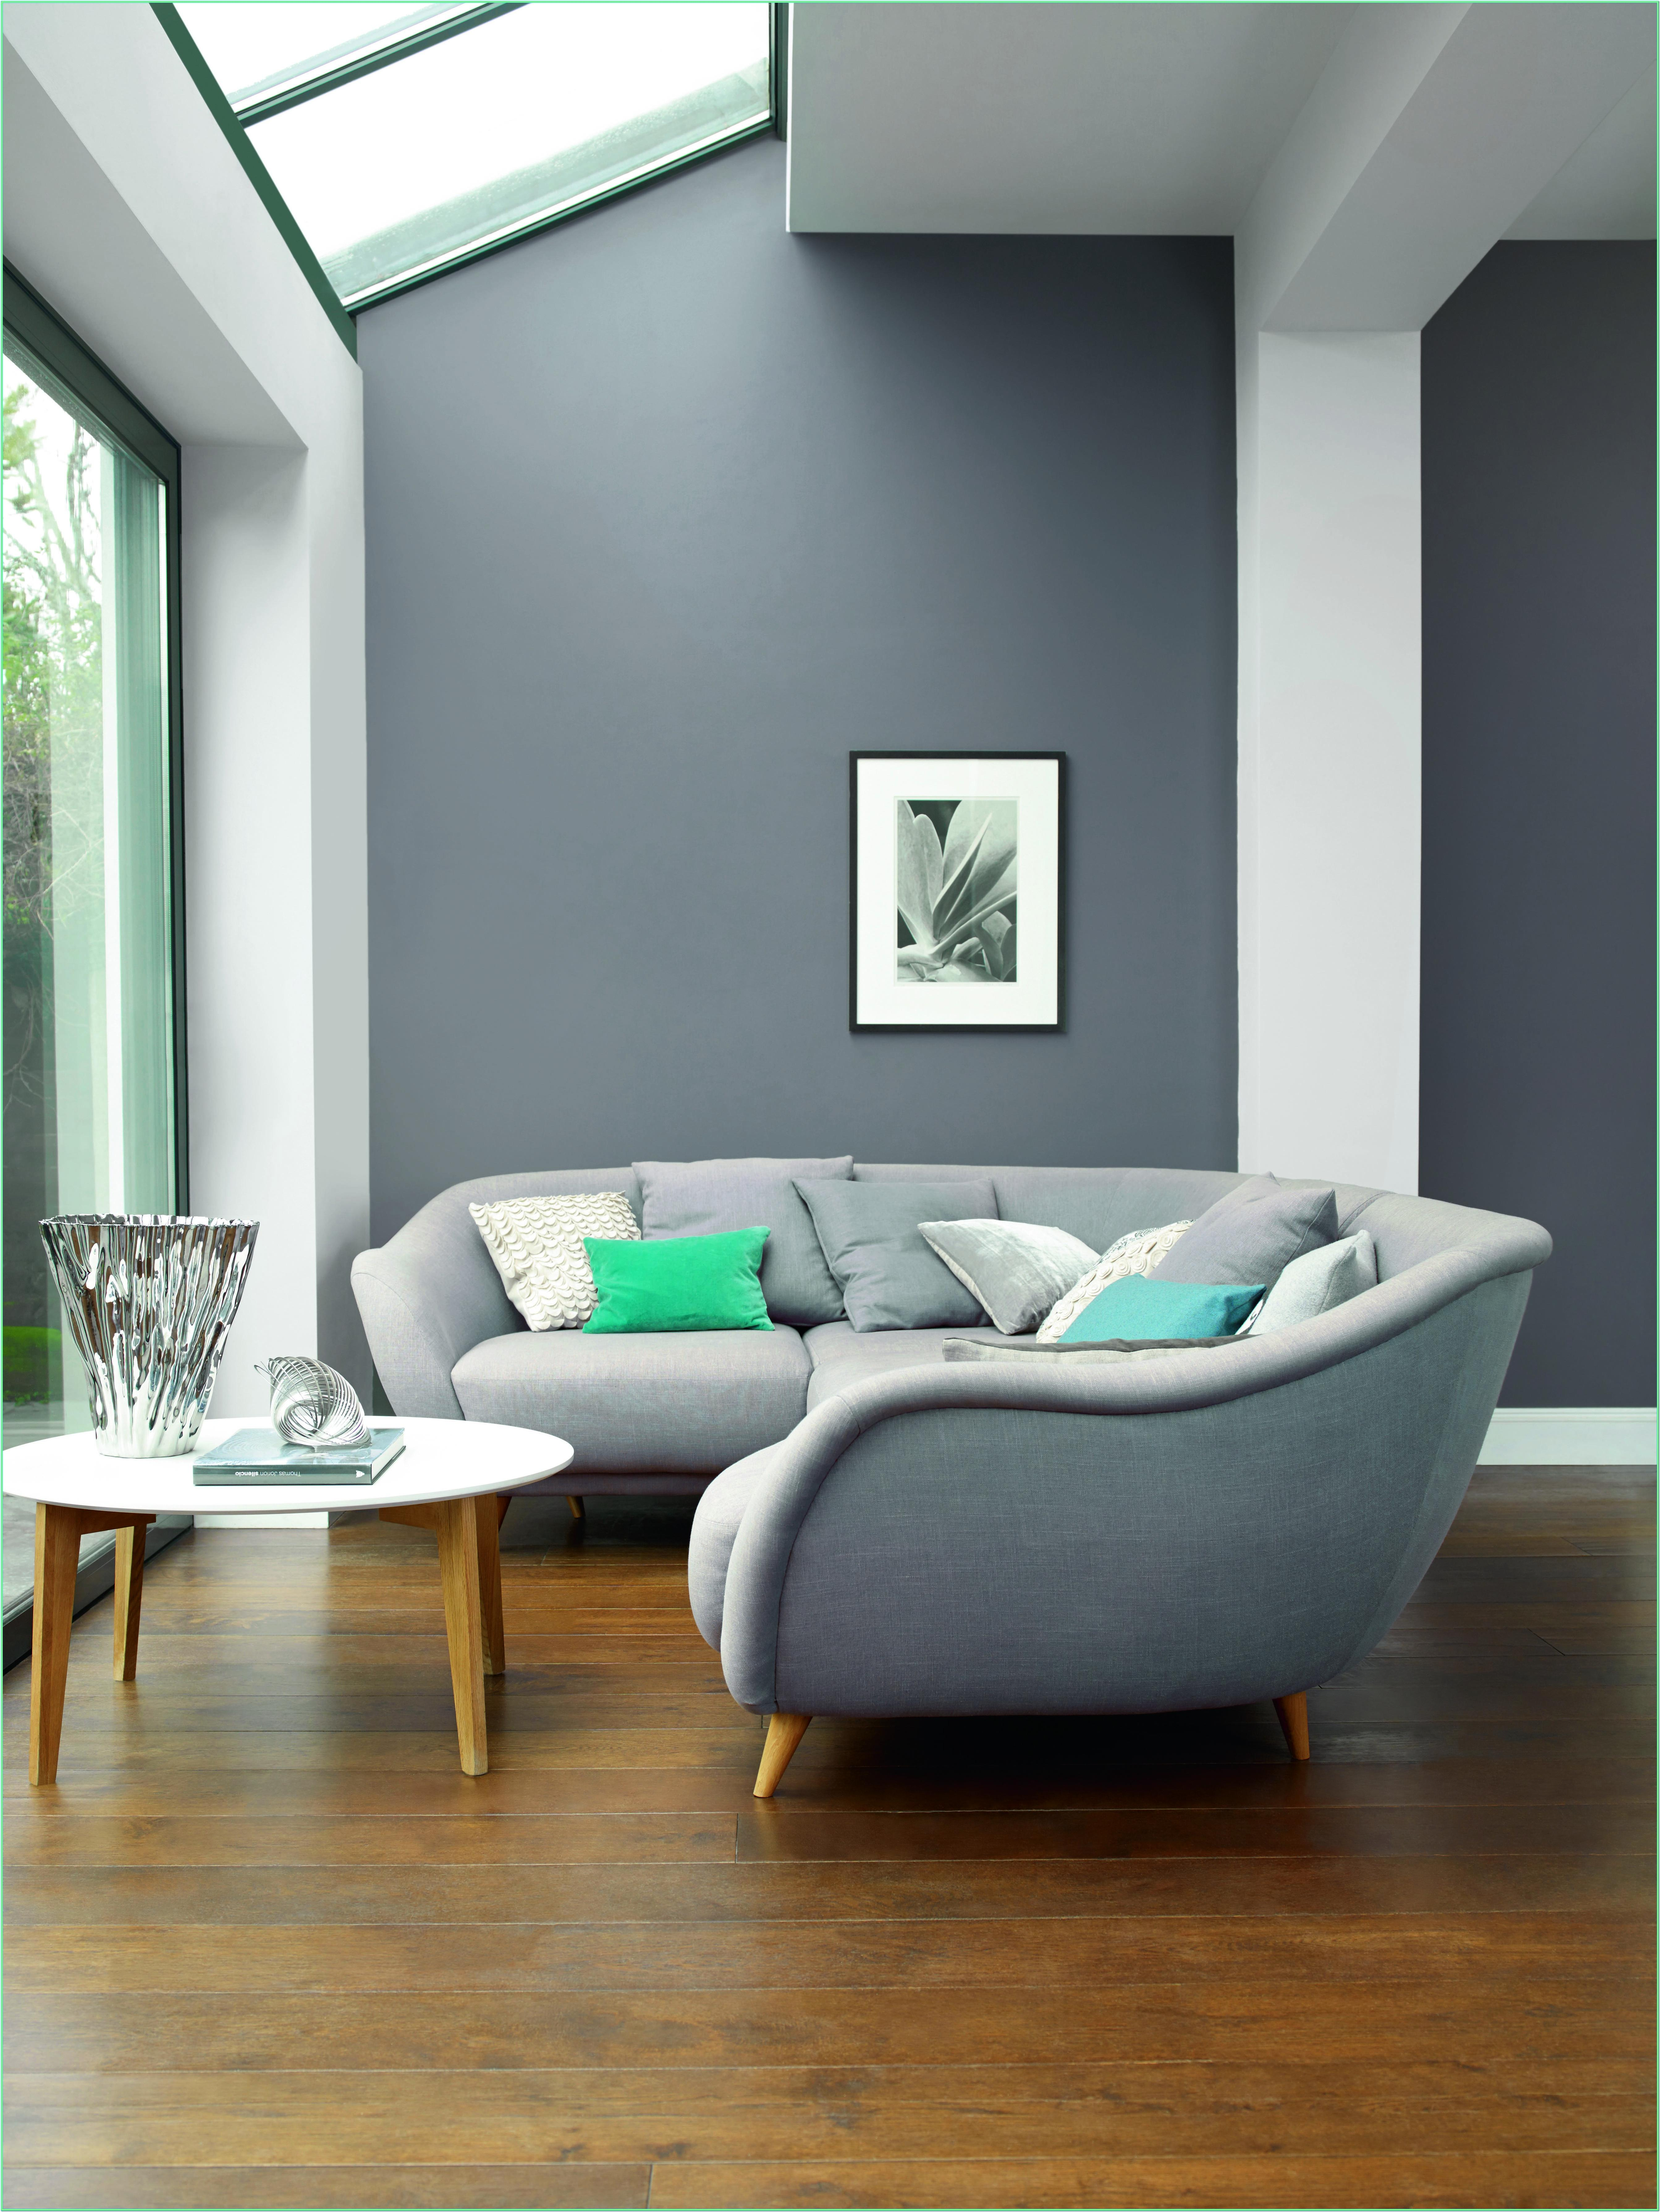 Decorating Ideas For Living Room With Light Gray Walls